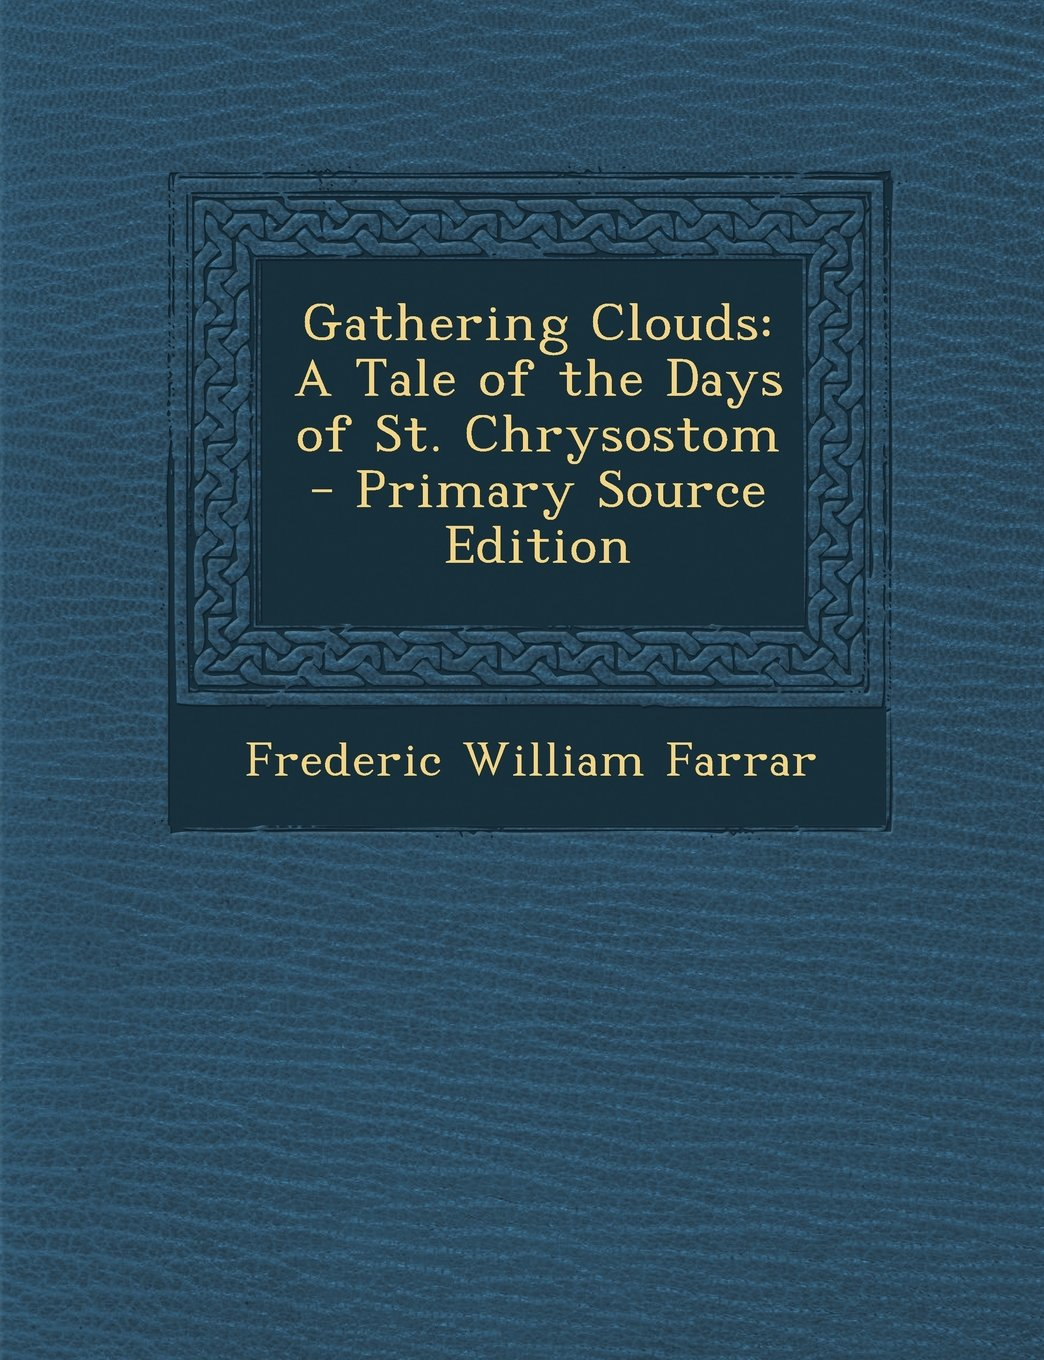 Gathering Clouds: A Tale of the Days of St. Chrysostom - Primary Source Edition ebook